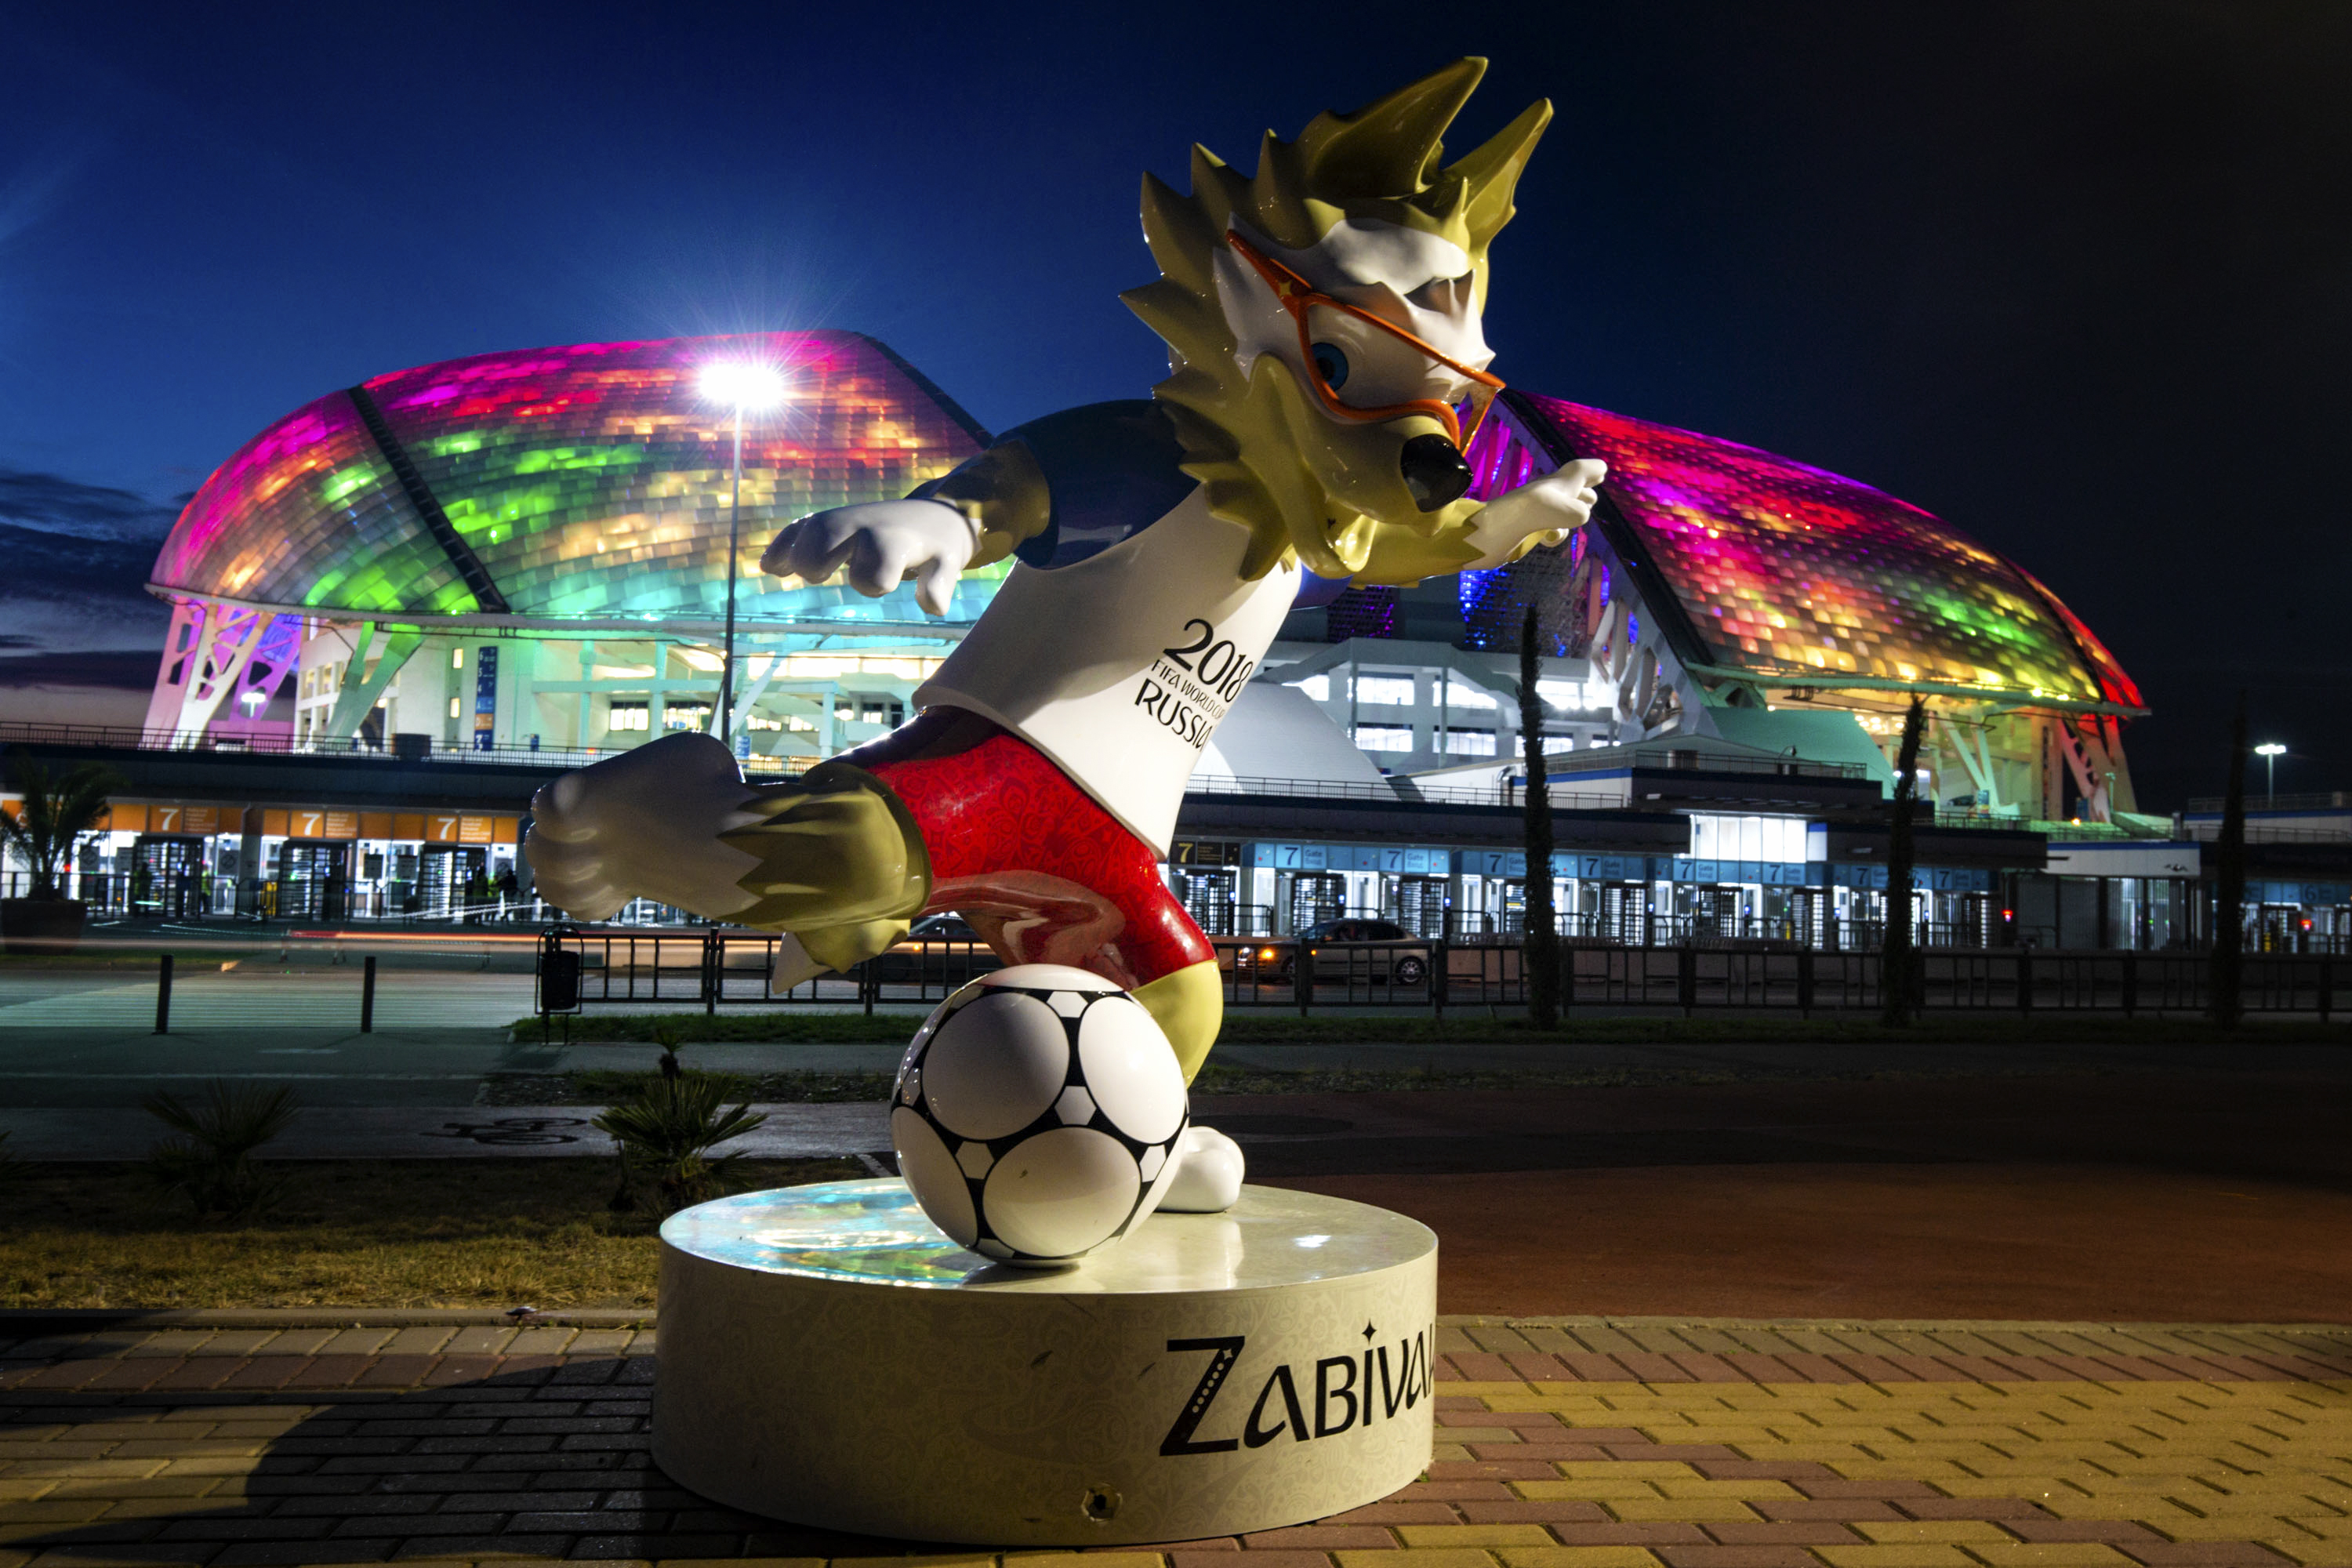 View of the Fisht Stadium and the statue of Zabivaka the Wolf, the official mascot of the 2018 FIFA World Cup prior to the start of the FIFA 2018 World Cup on June 9, 2018 in Sochi, Russia.